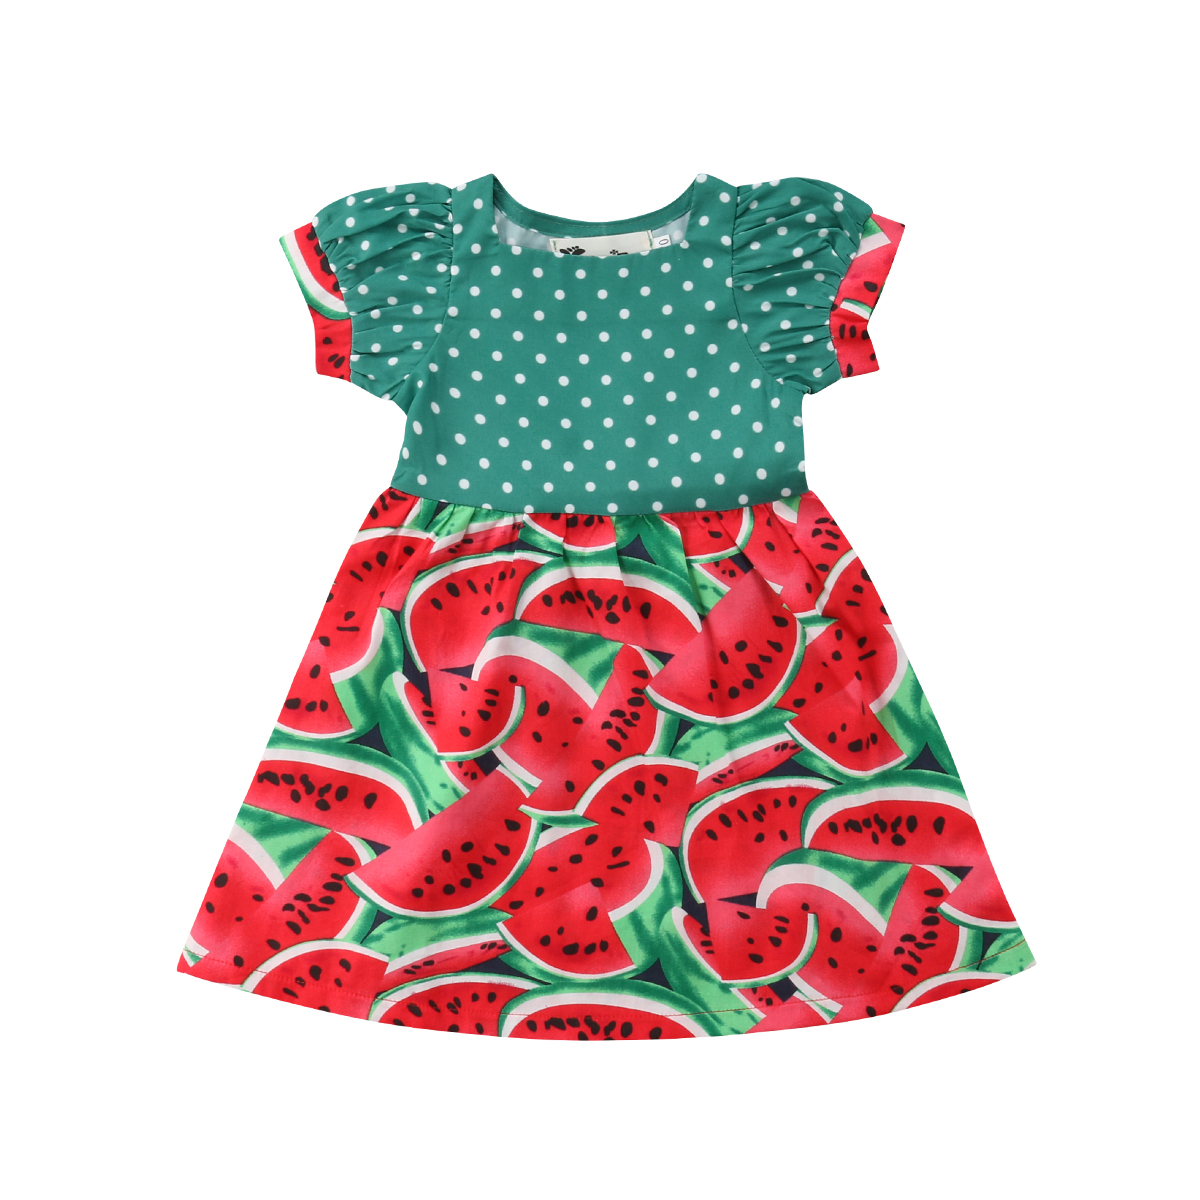 2019 Newest Style Summer Toddler Kids Baby Fashion Girl Short Sleeve Party Princess Adorable Dress Holiday Clothes 6m-3y